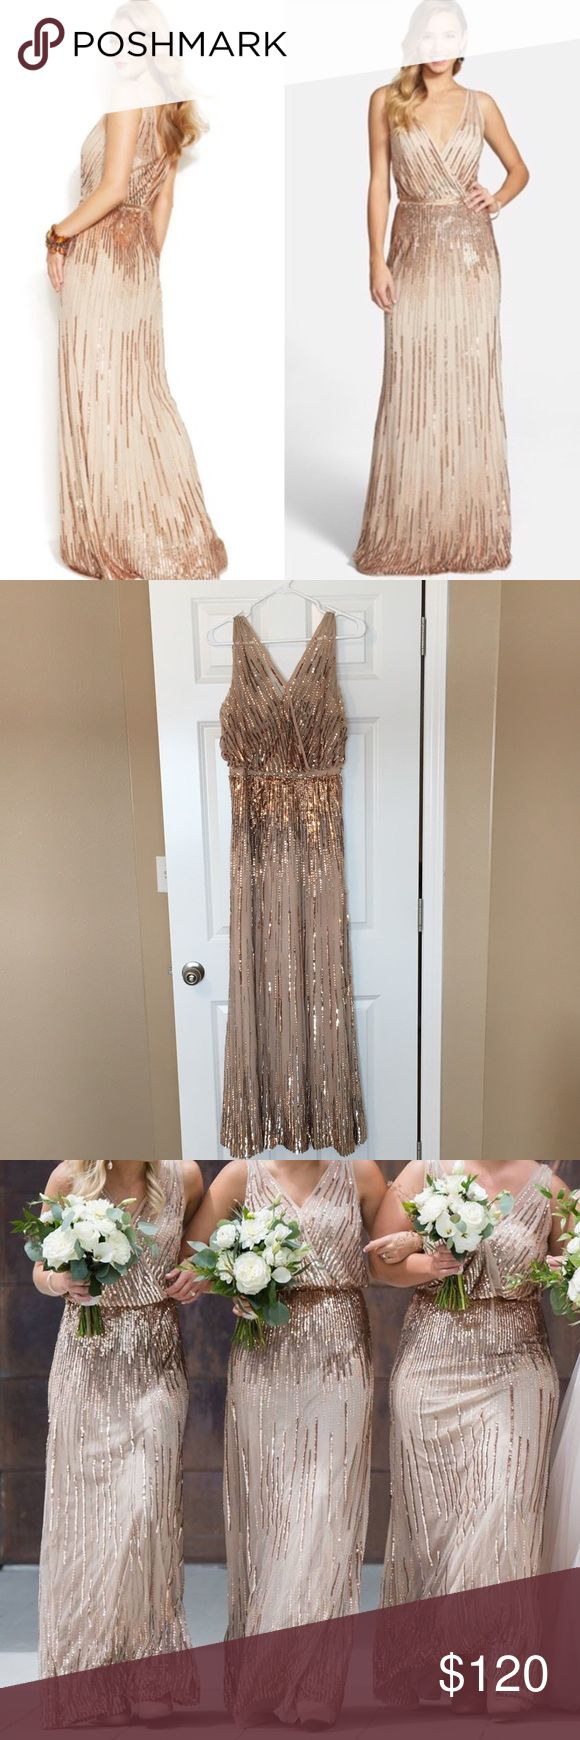 Adrianna Papell gold sequin bridesmaid dress Worn once! V-neck and v-back neckline. Beautiful, shimmering sequence dress. Zip-back closure, fully lined. Adrianna Papell Dresses Maxi